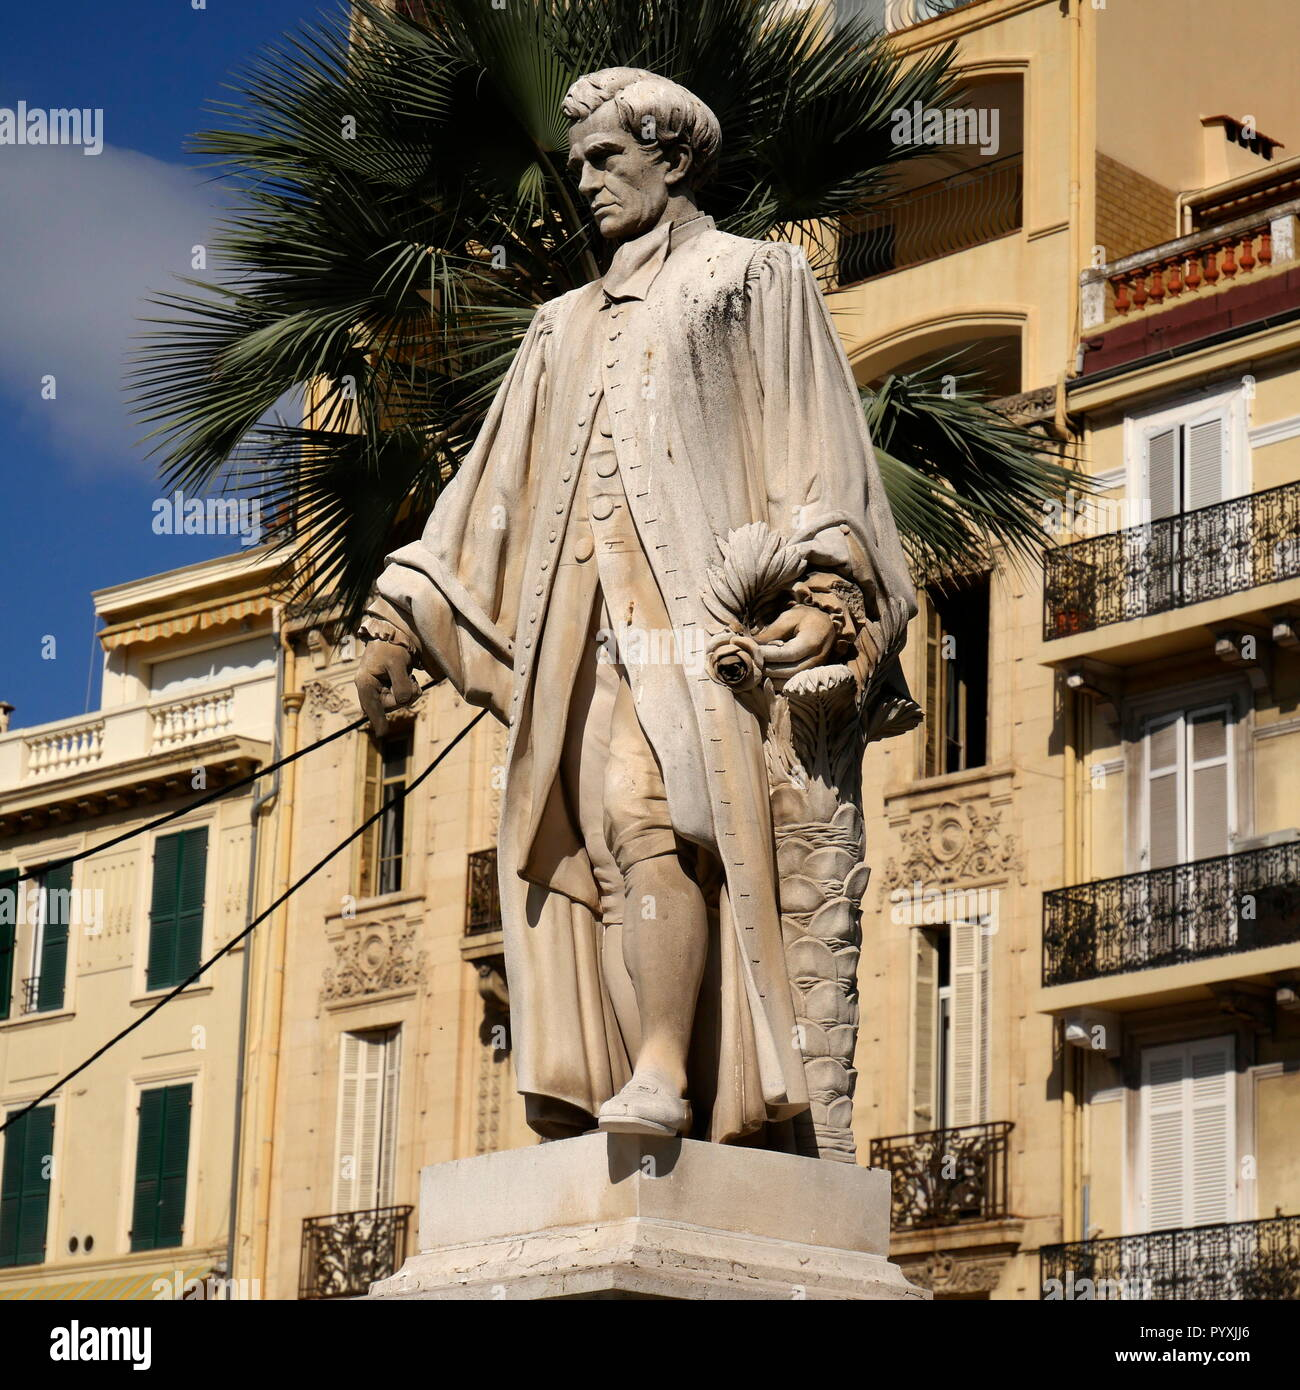 AJAXNETPHOTO. 2018. CANNES, FRANCE. - ENGLISH INFLUENCE - STATUE NEAR ALLEE DE LA LIBERTE OF ENGLISH ARISTOCRAT 1ST BARON LORD HENRY PETER BROUGHAM AND VAUX. PHOTO:JONATHAN EASTLAND/AJAX REF:GX8_182509_605 - Stock Image